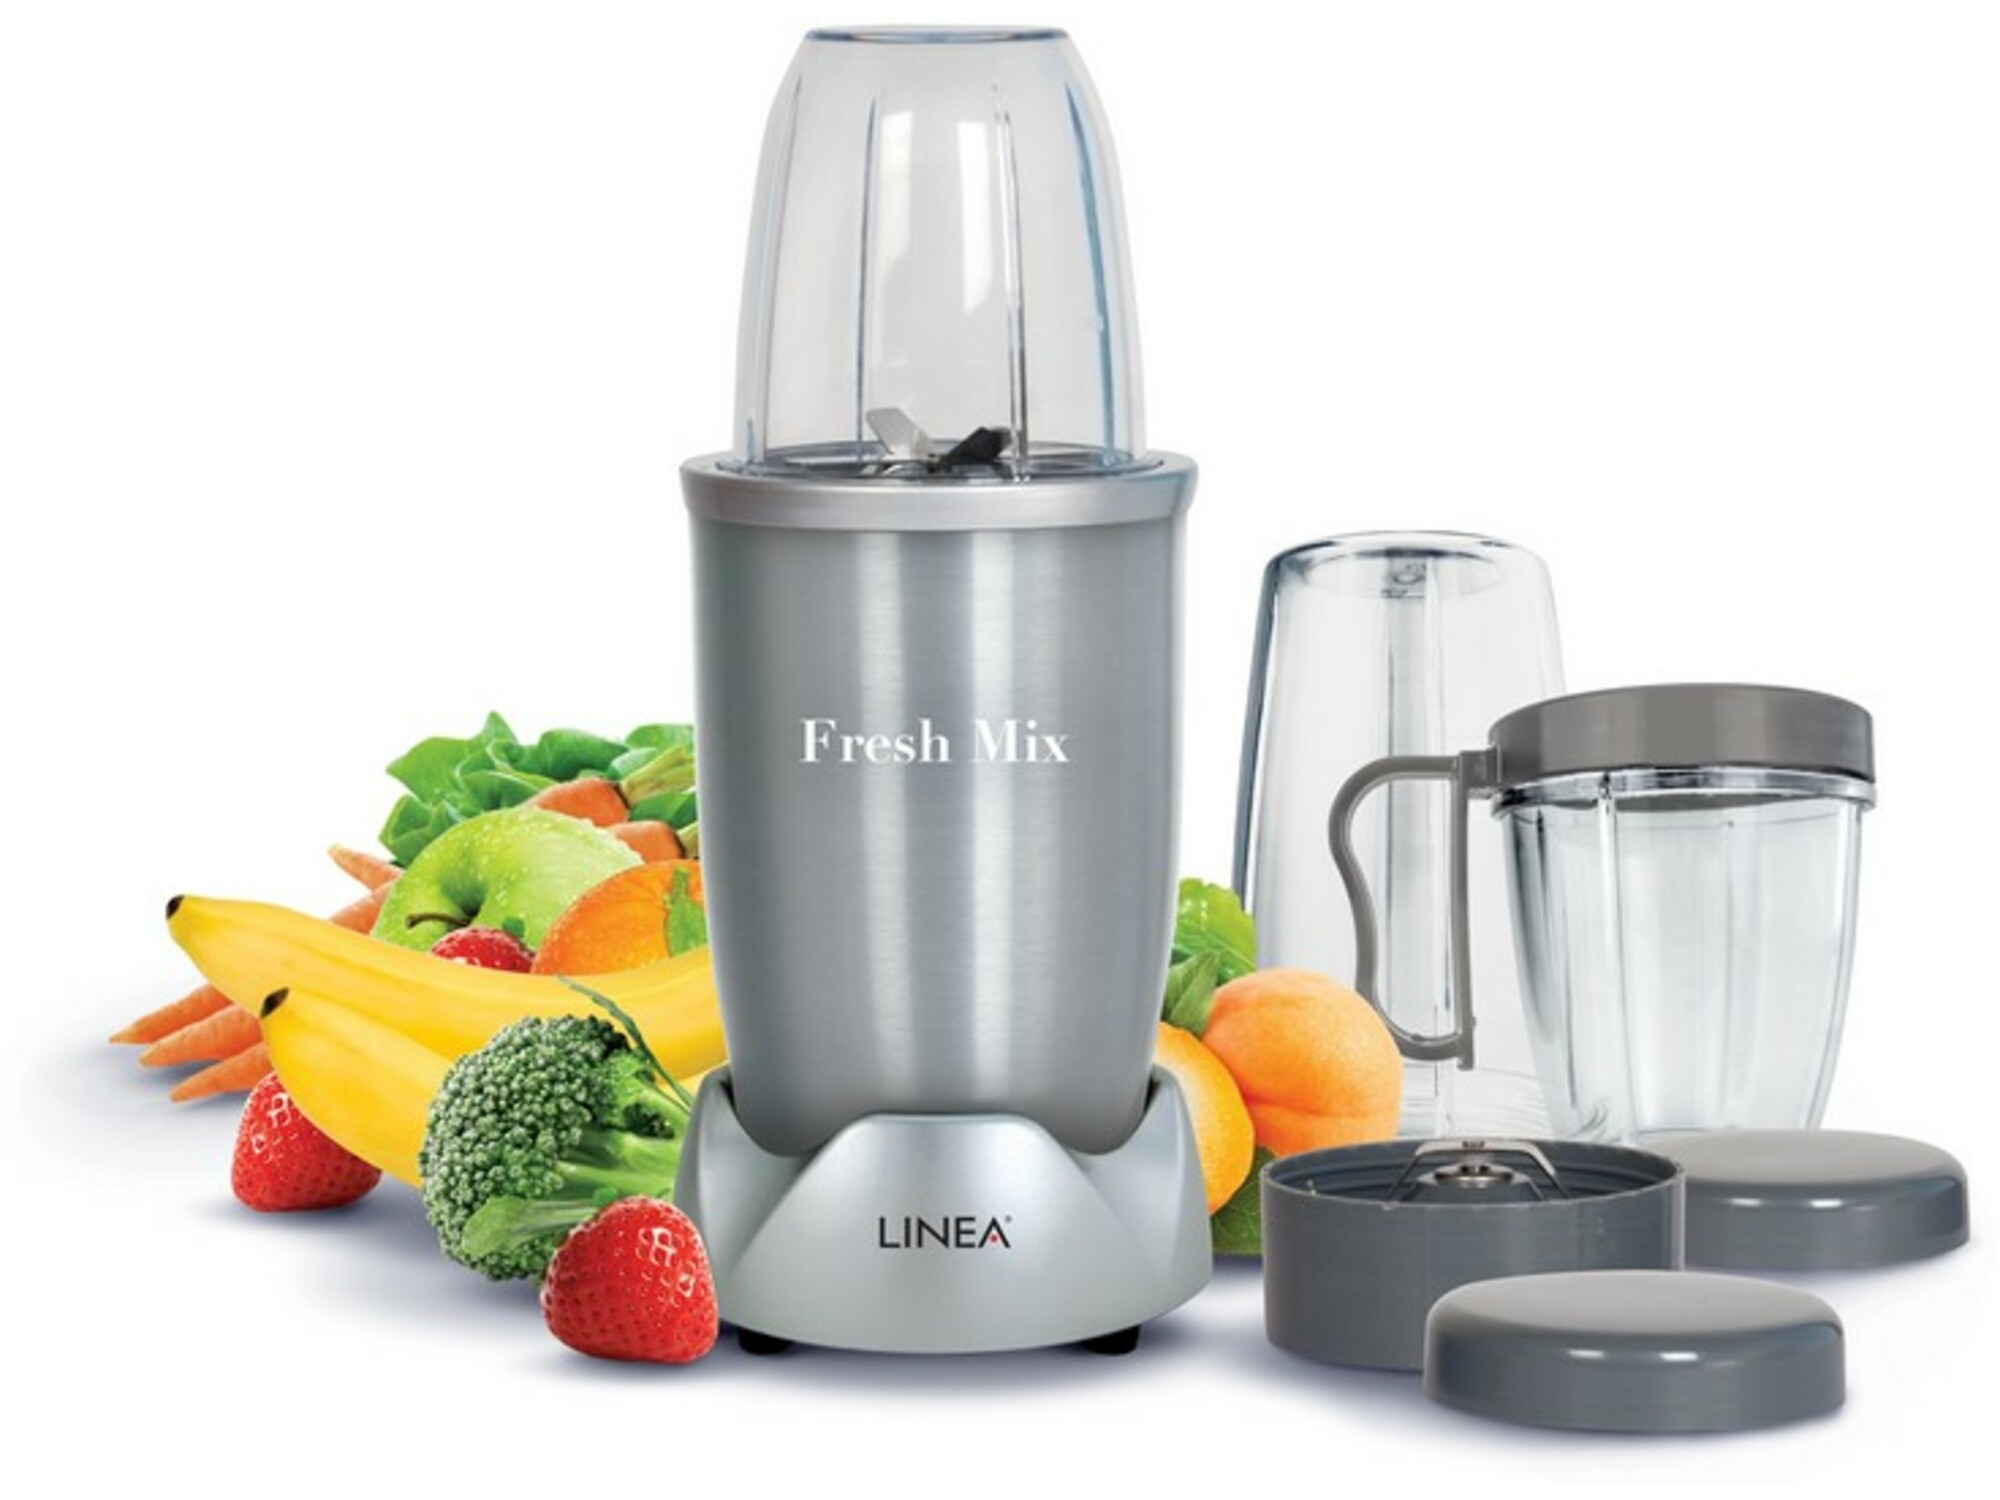 Linea Fresh Mix Blender LFM-0414